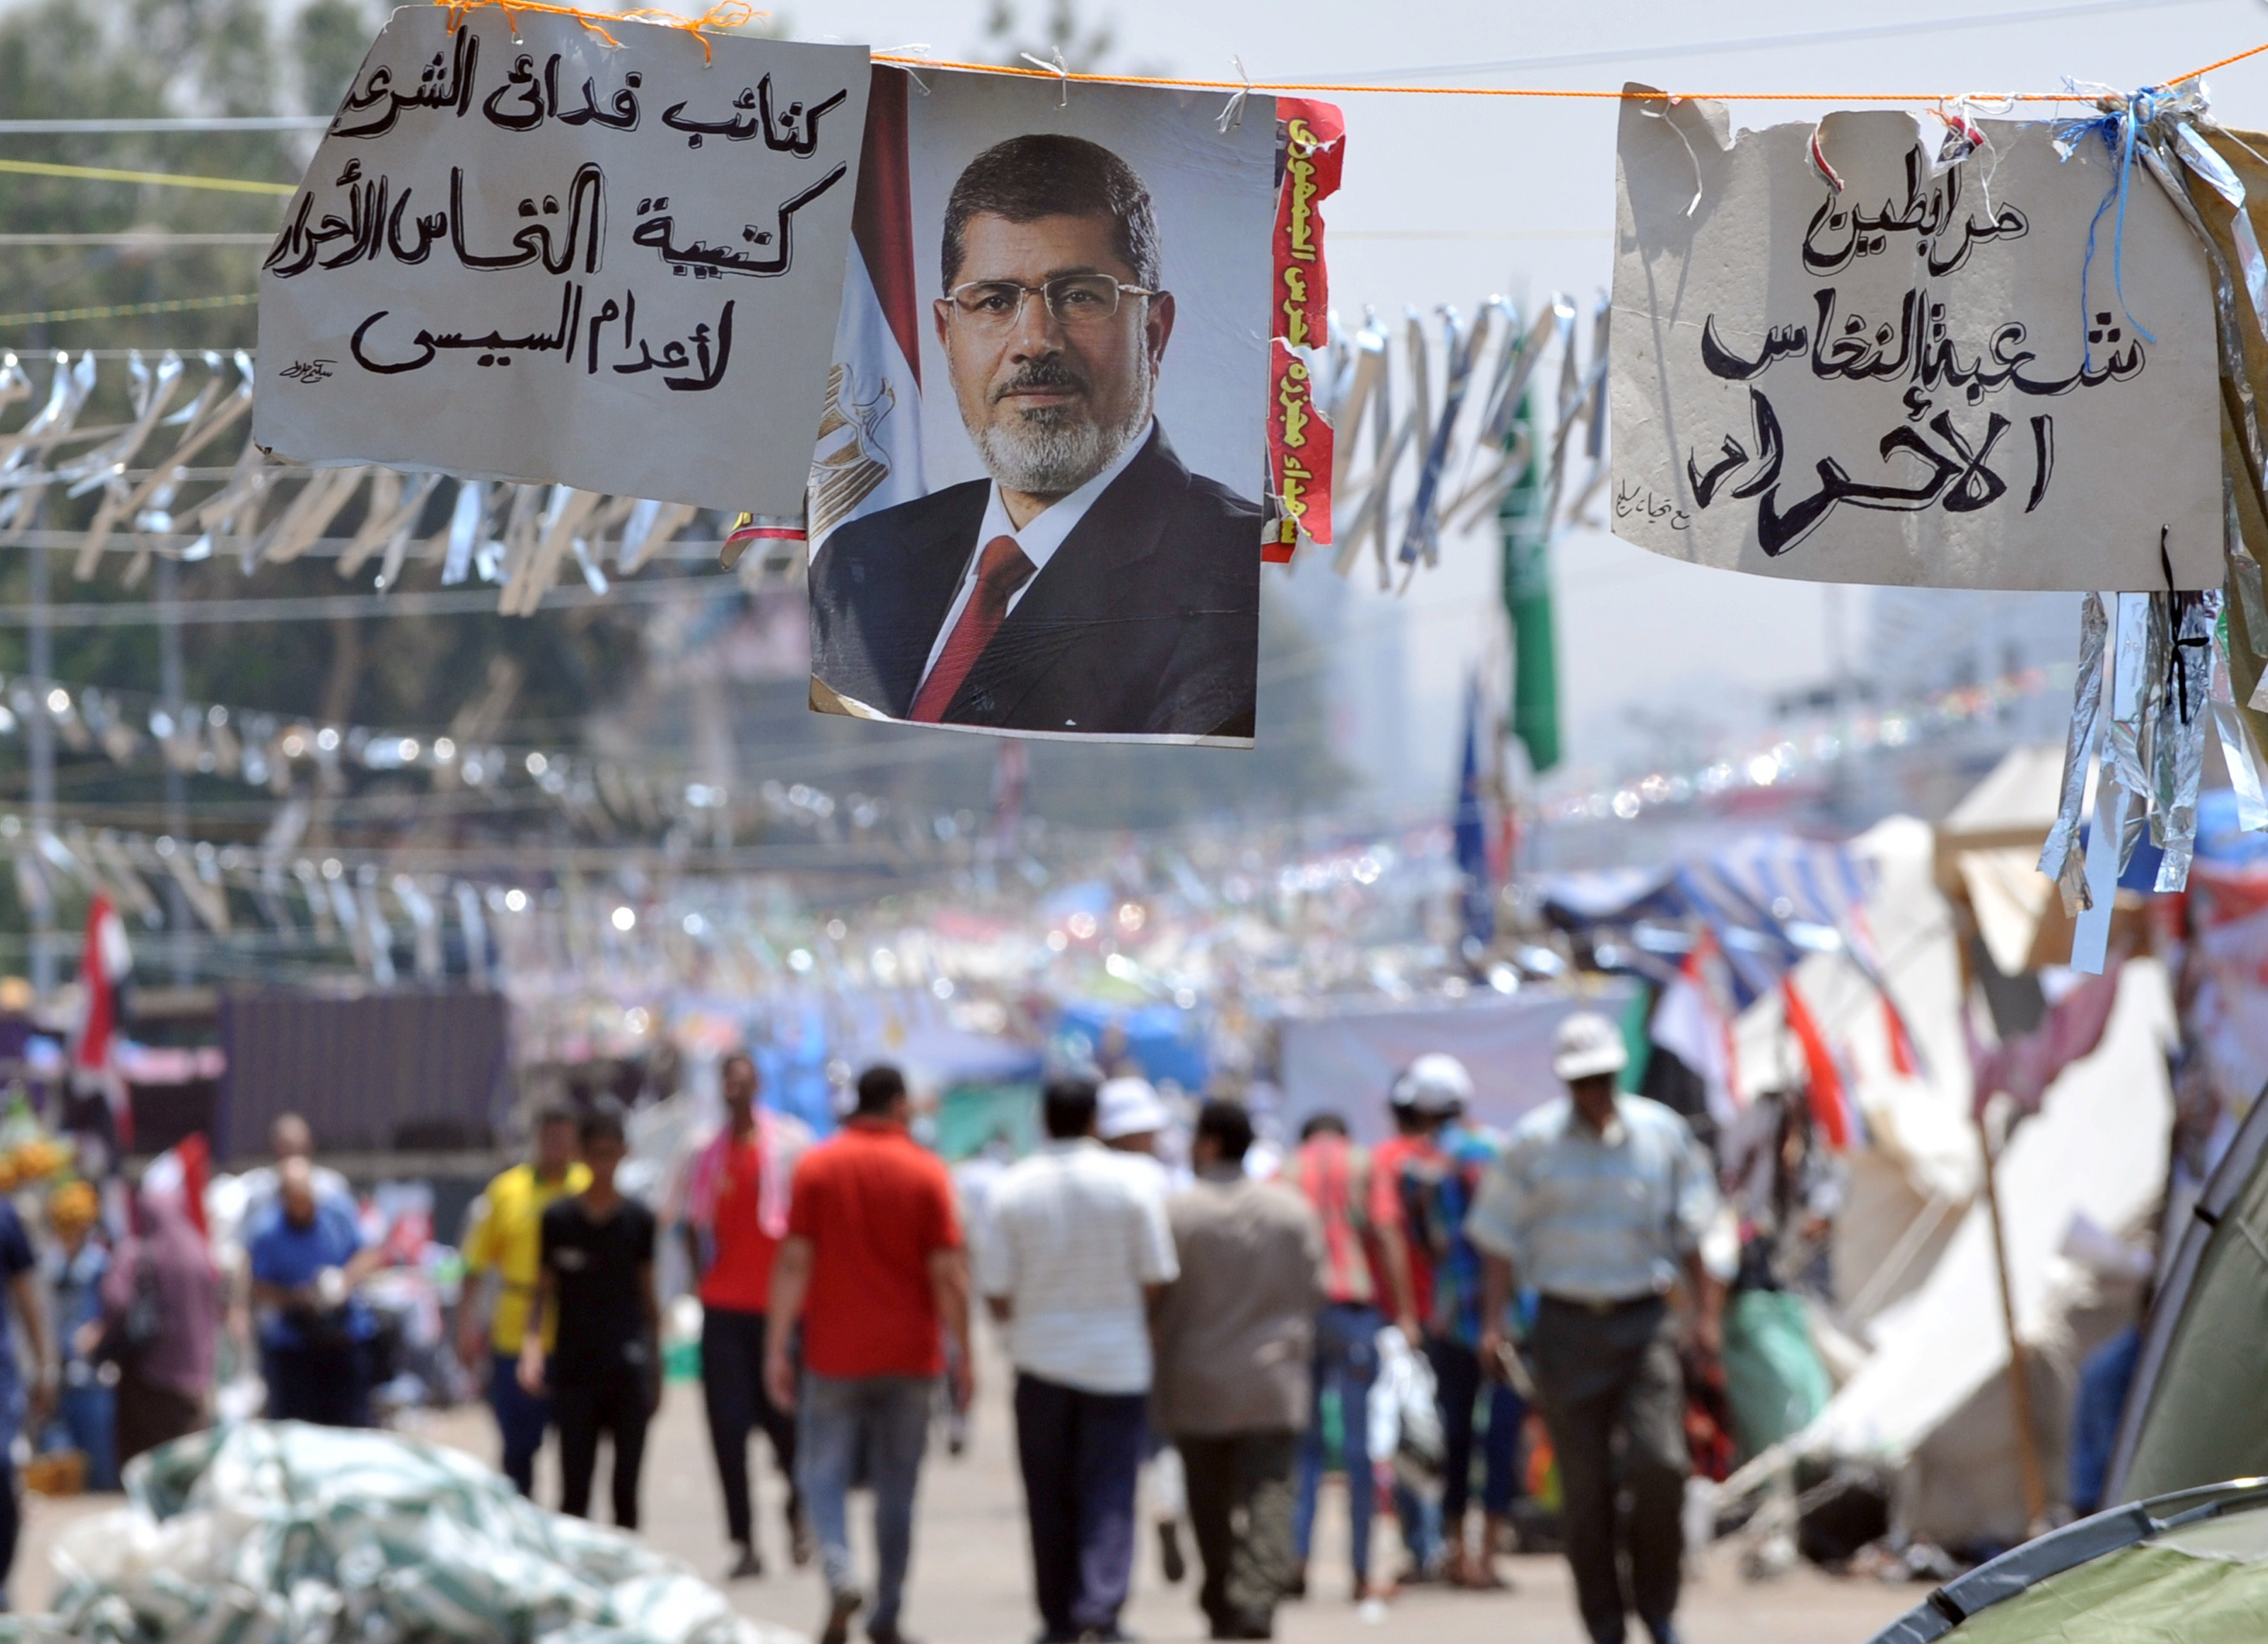 Supporters of Egypt's deposed president Mohamed Morsi walk past his portrait in Cairo on July 23, 2013 during a sit in outside Rabaa al-Adawiya mosque.  (AFP Photo)